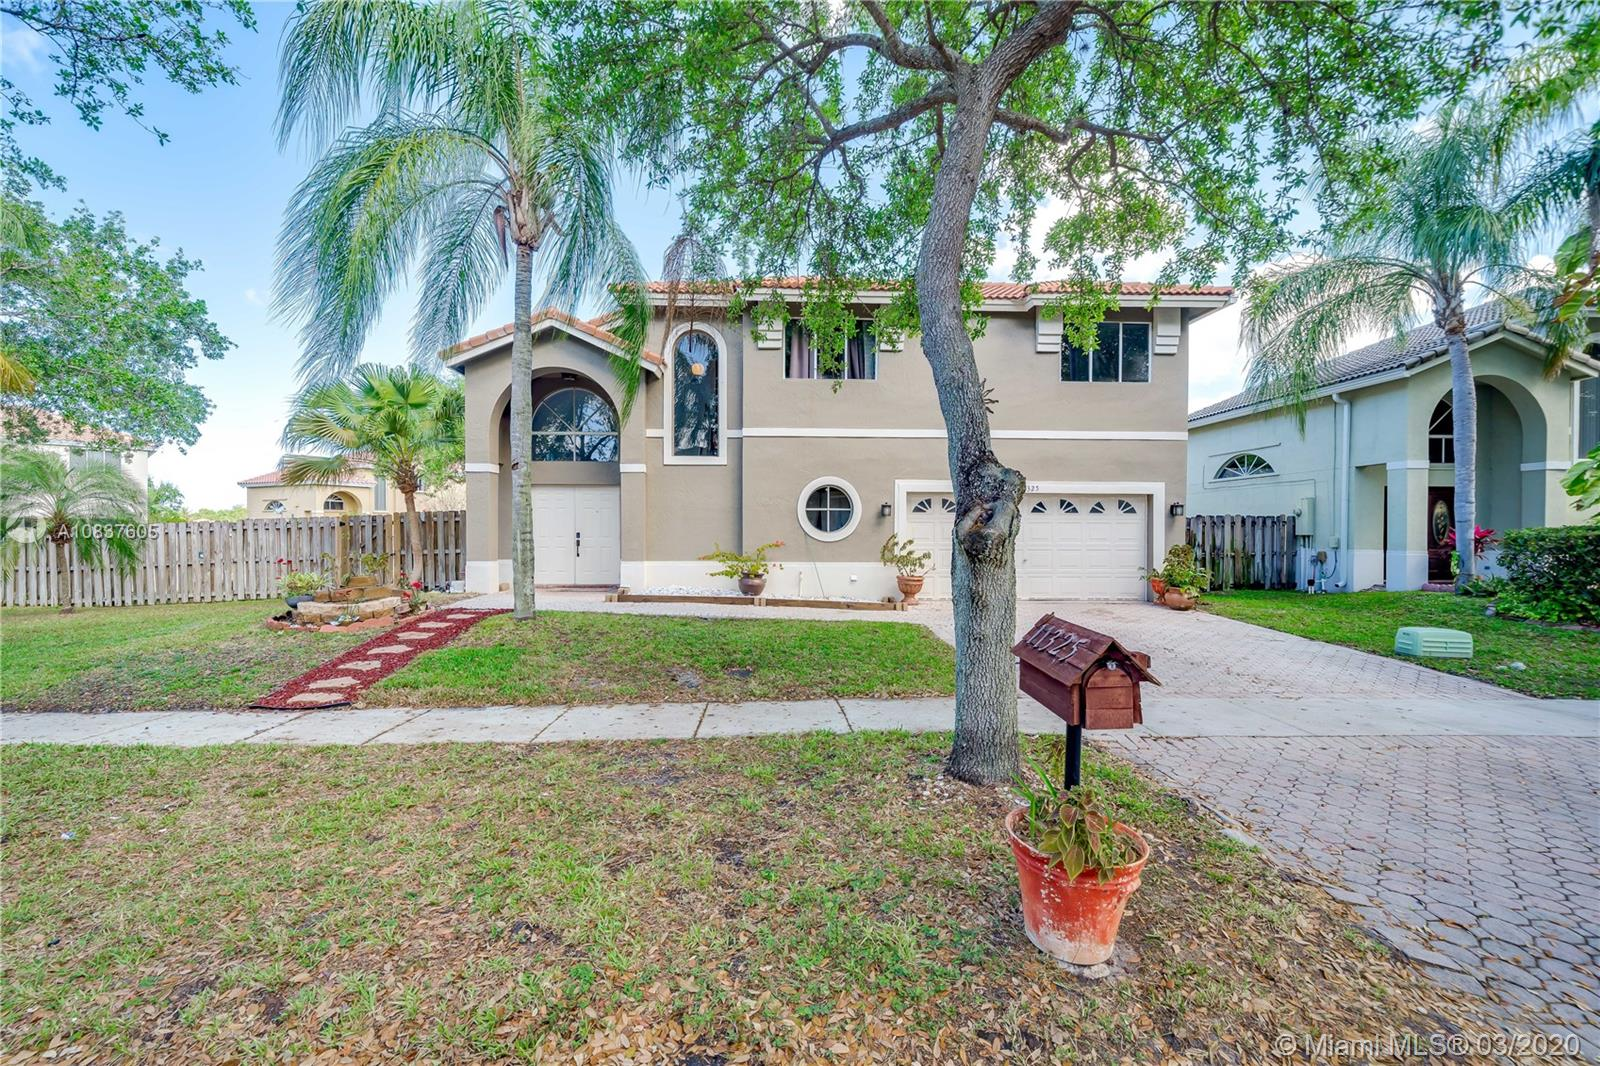 Cooper City Homes for Sale -  Price Reduced,  11325 Roundelay Rd